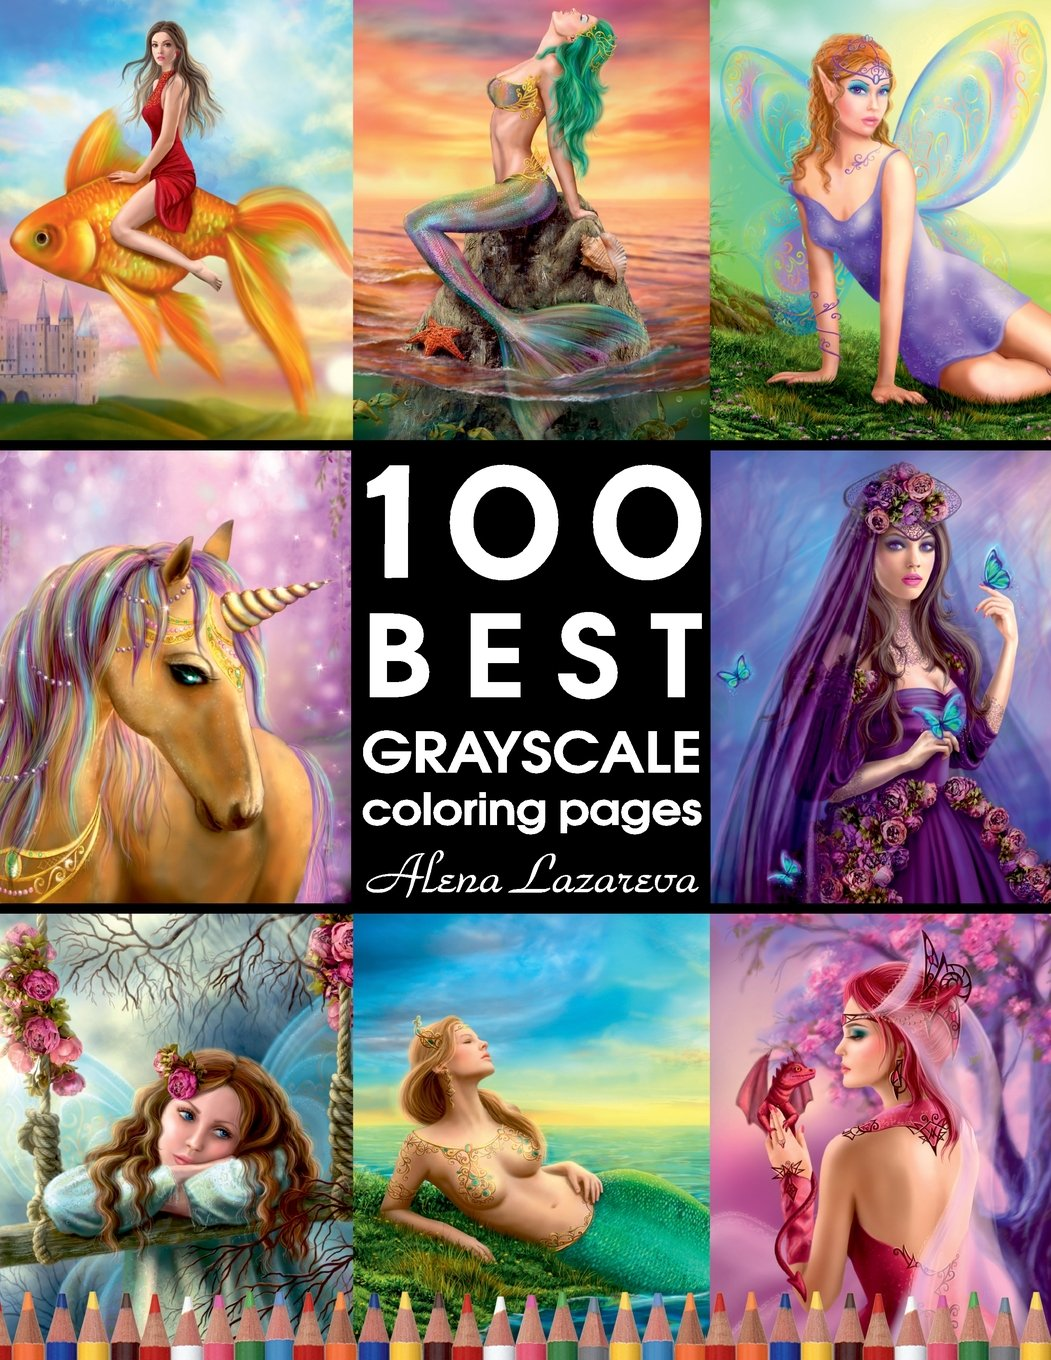 100 Best Grayscale Coloring Pages By Alena Lazareva  Perfect Gift